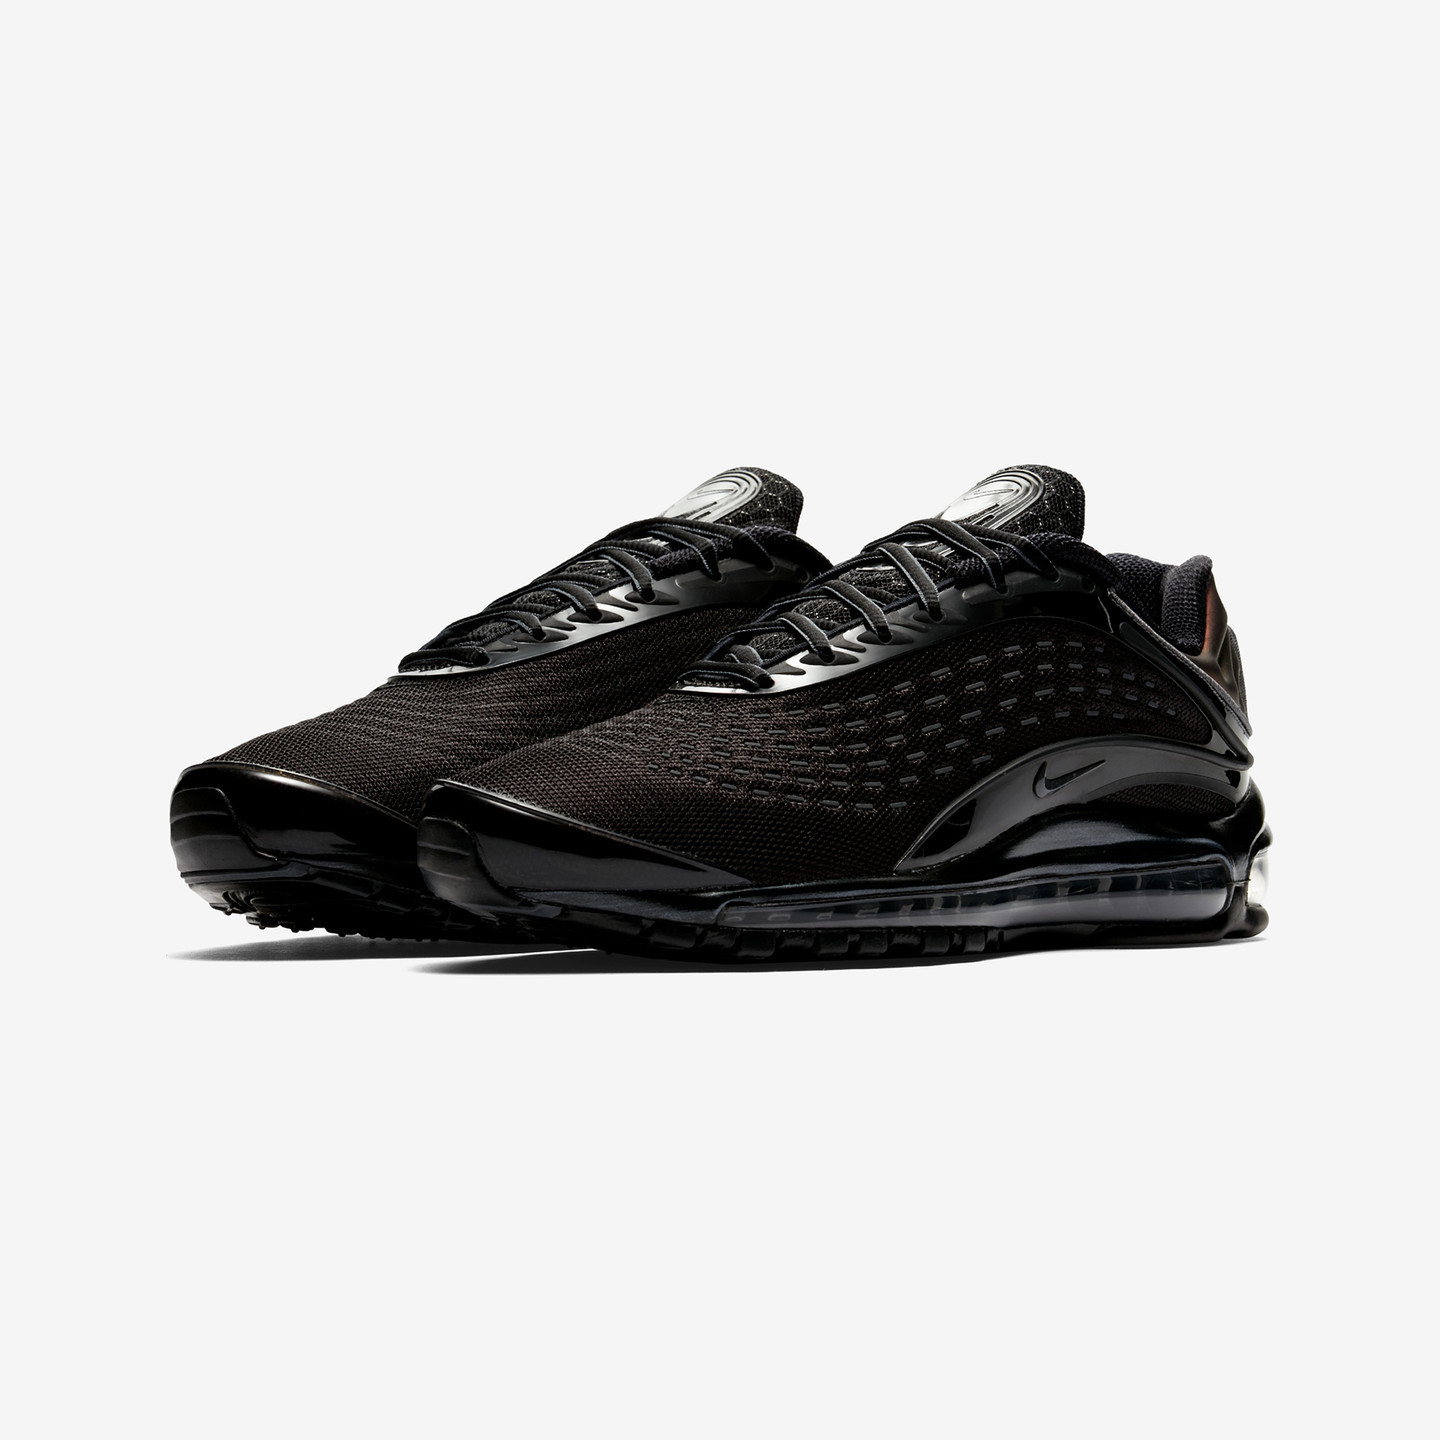 Nike Air Max Deluxe Black / Dark Grey / Anthracite AV2589-001